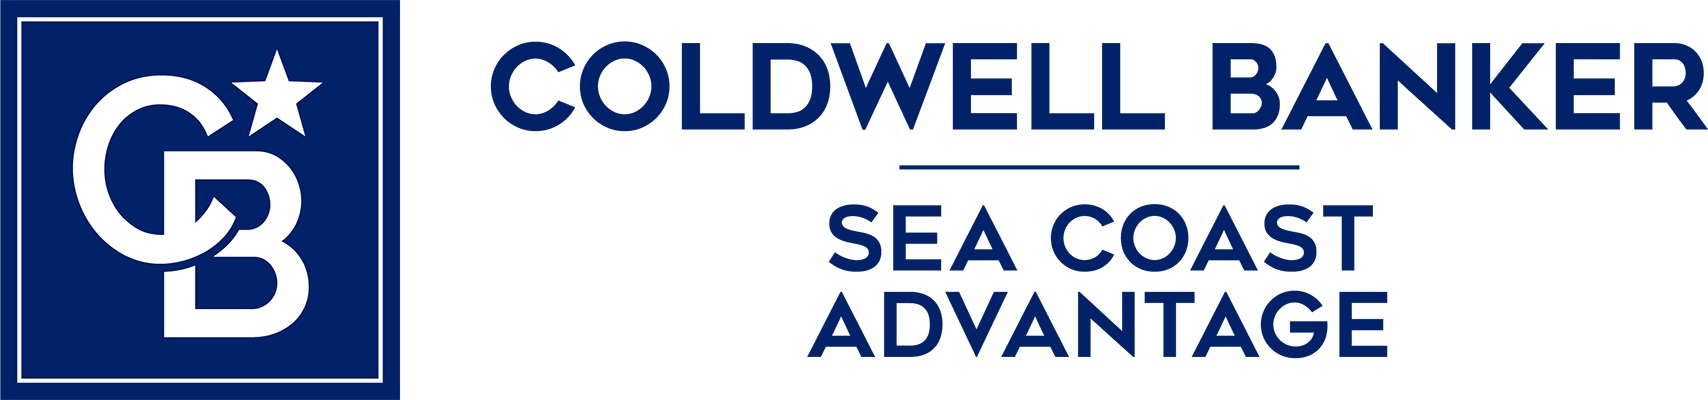 Michelle Dorwart - Coldwell Banker Sea Coast Advantage Realty Logo